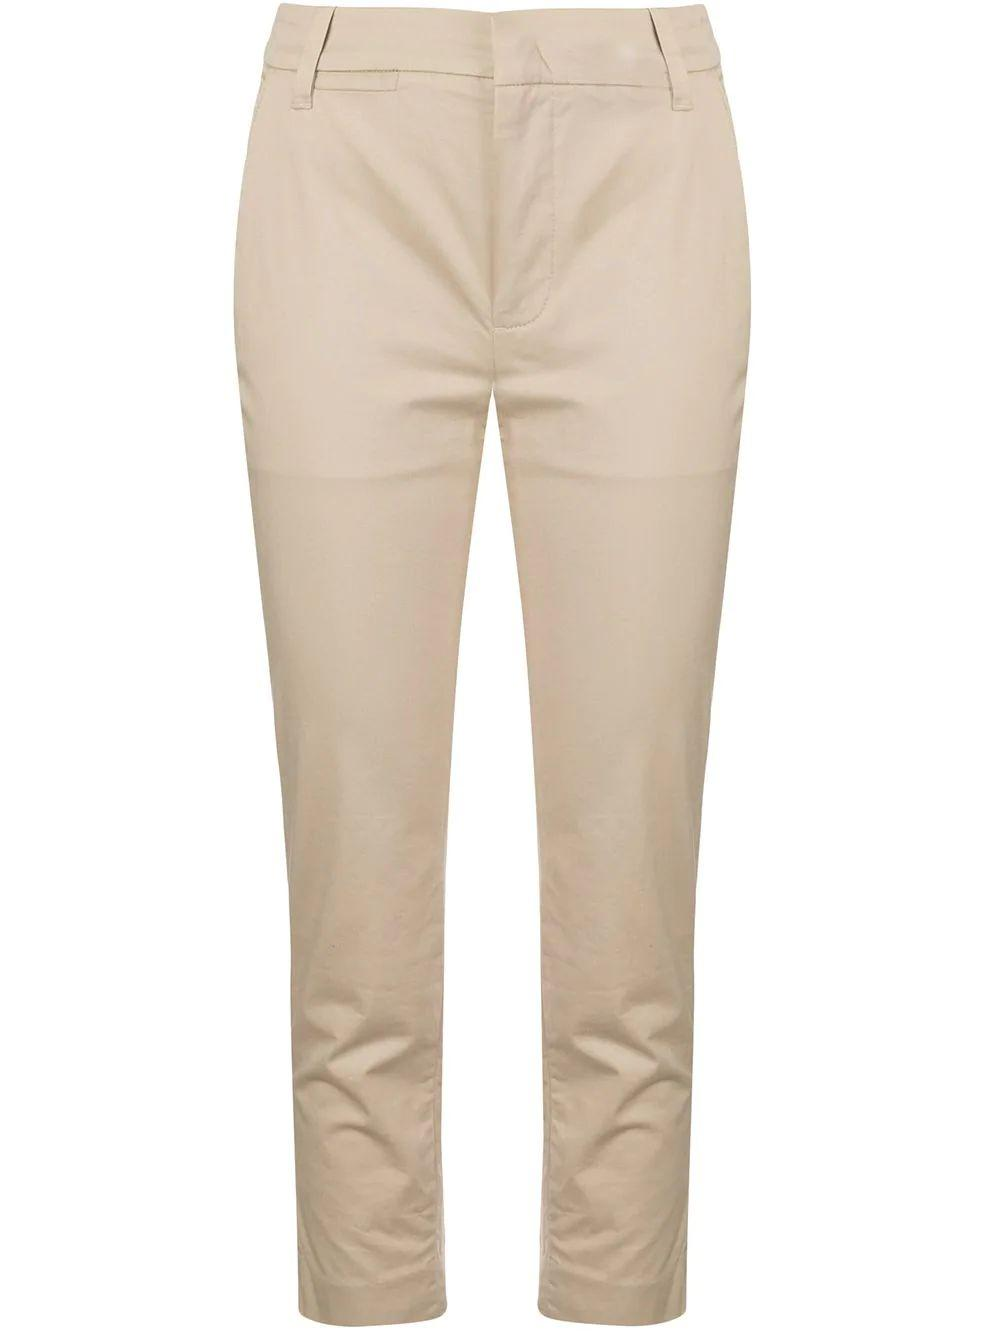 Coin Pocket Chino Pant